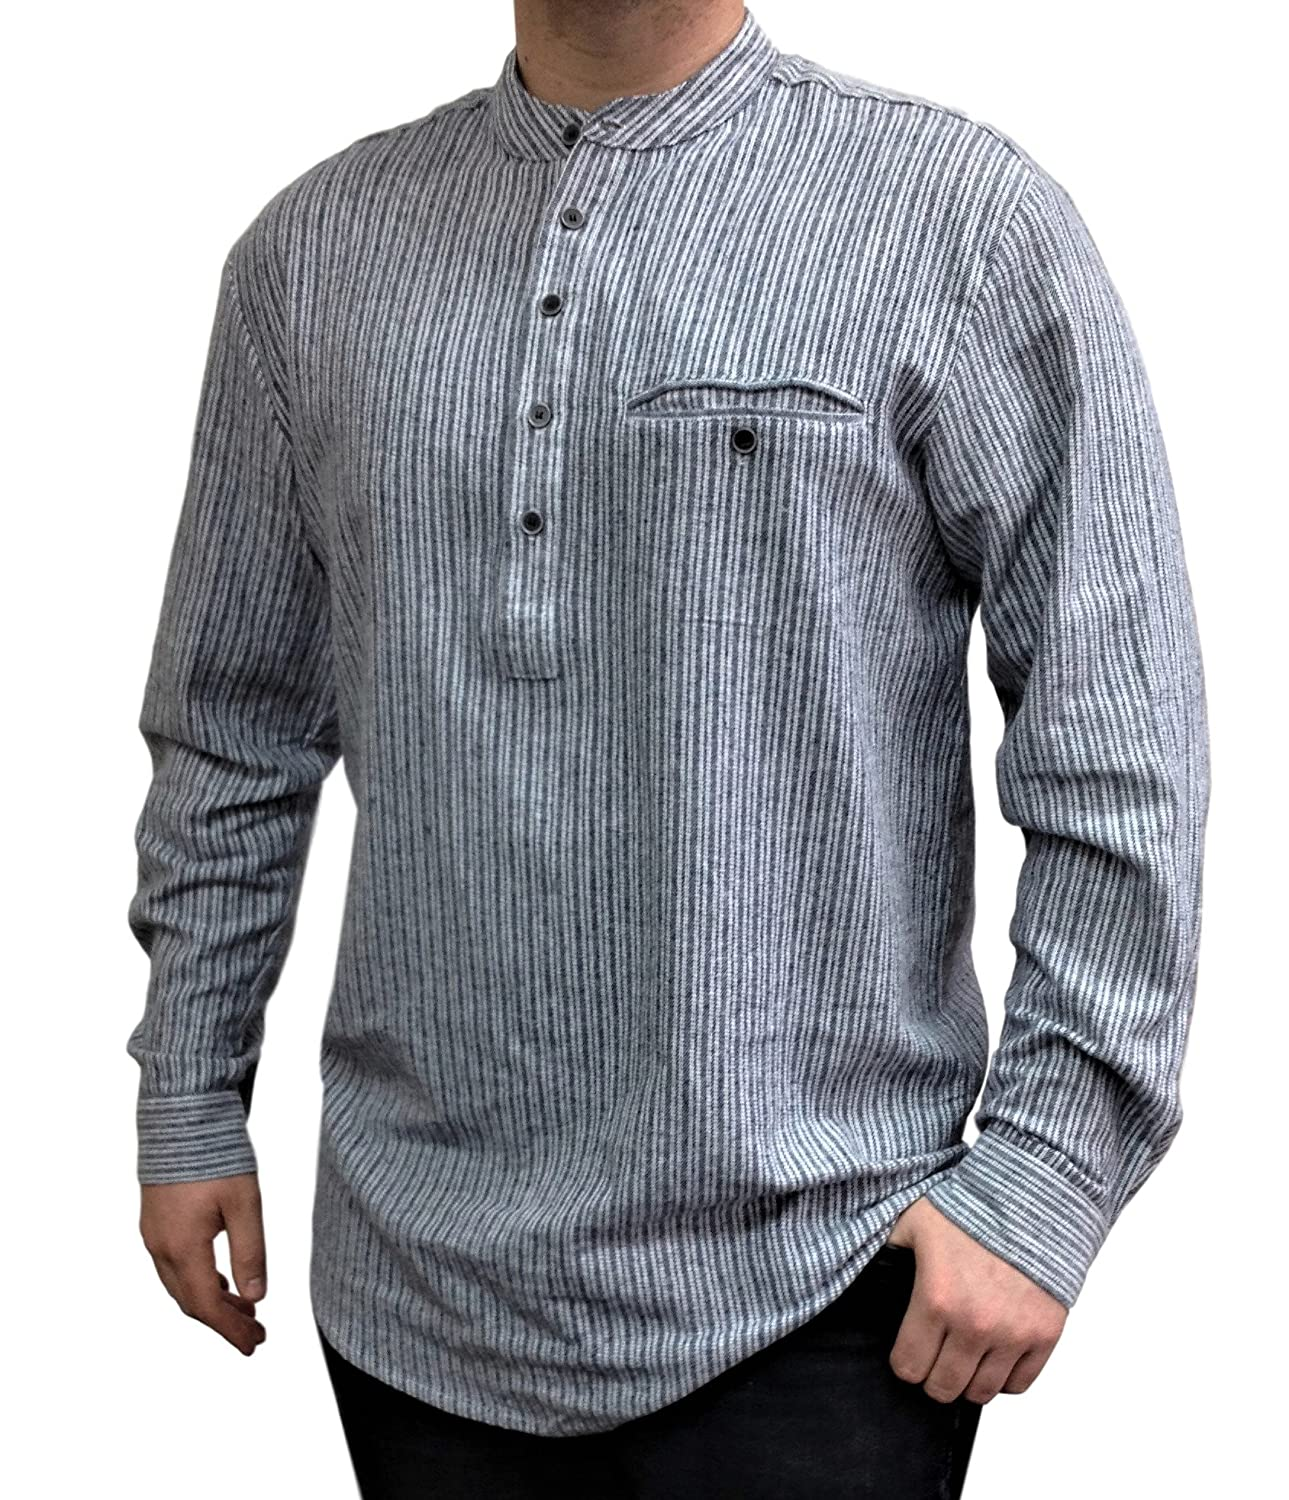 a2354895 100% Irish cotton flannel. Machine Wash. Do not tumble dry. Grandfather  shirt in classic color and style. Durable, soft, comfortable and warm